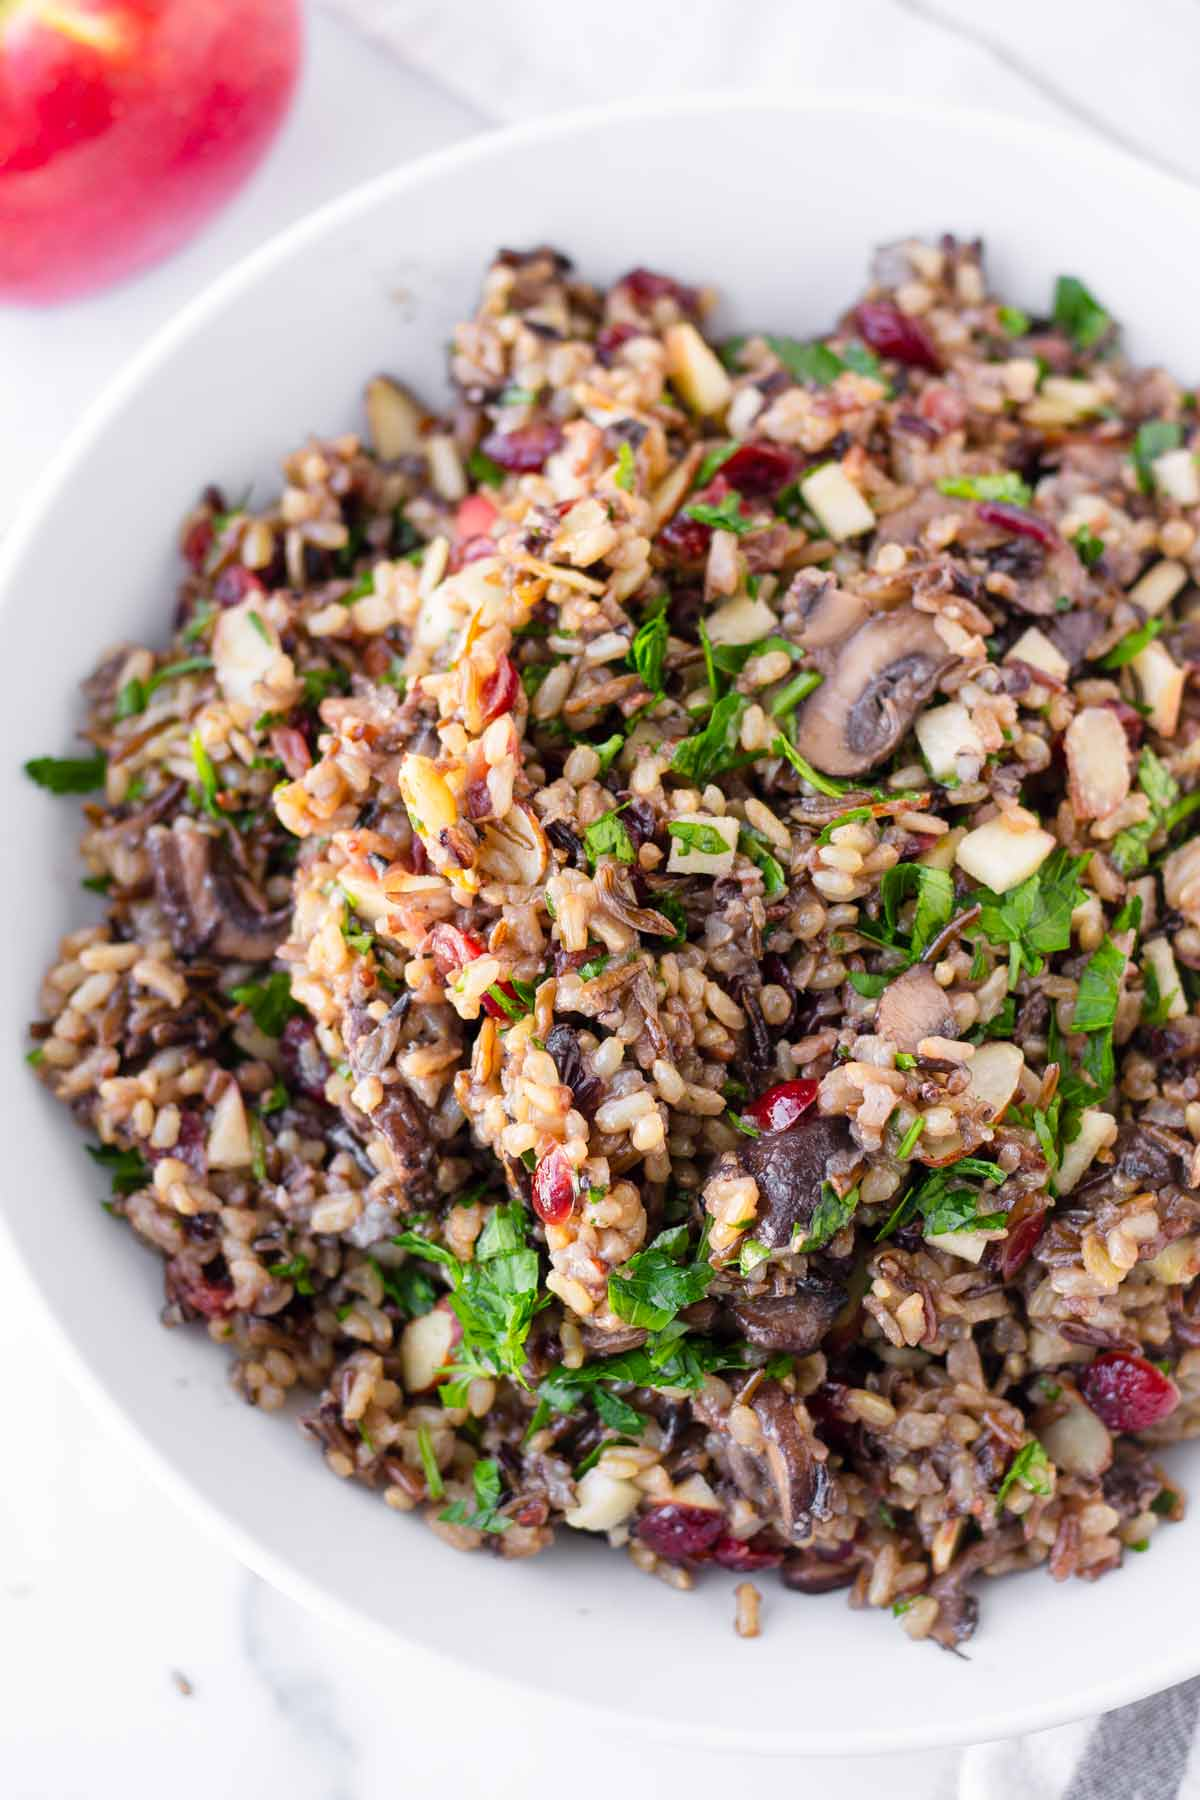 close up fo pilaf with wild rice blend and fruits